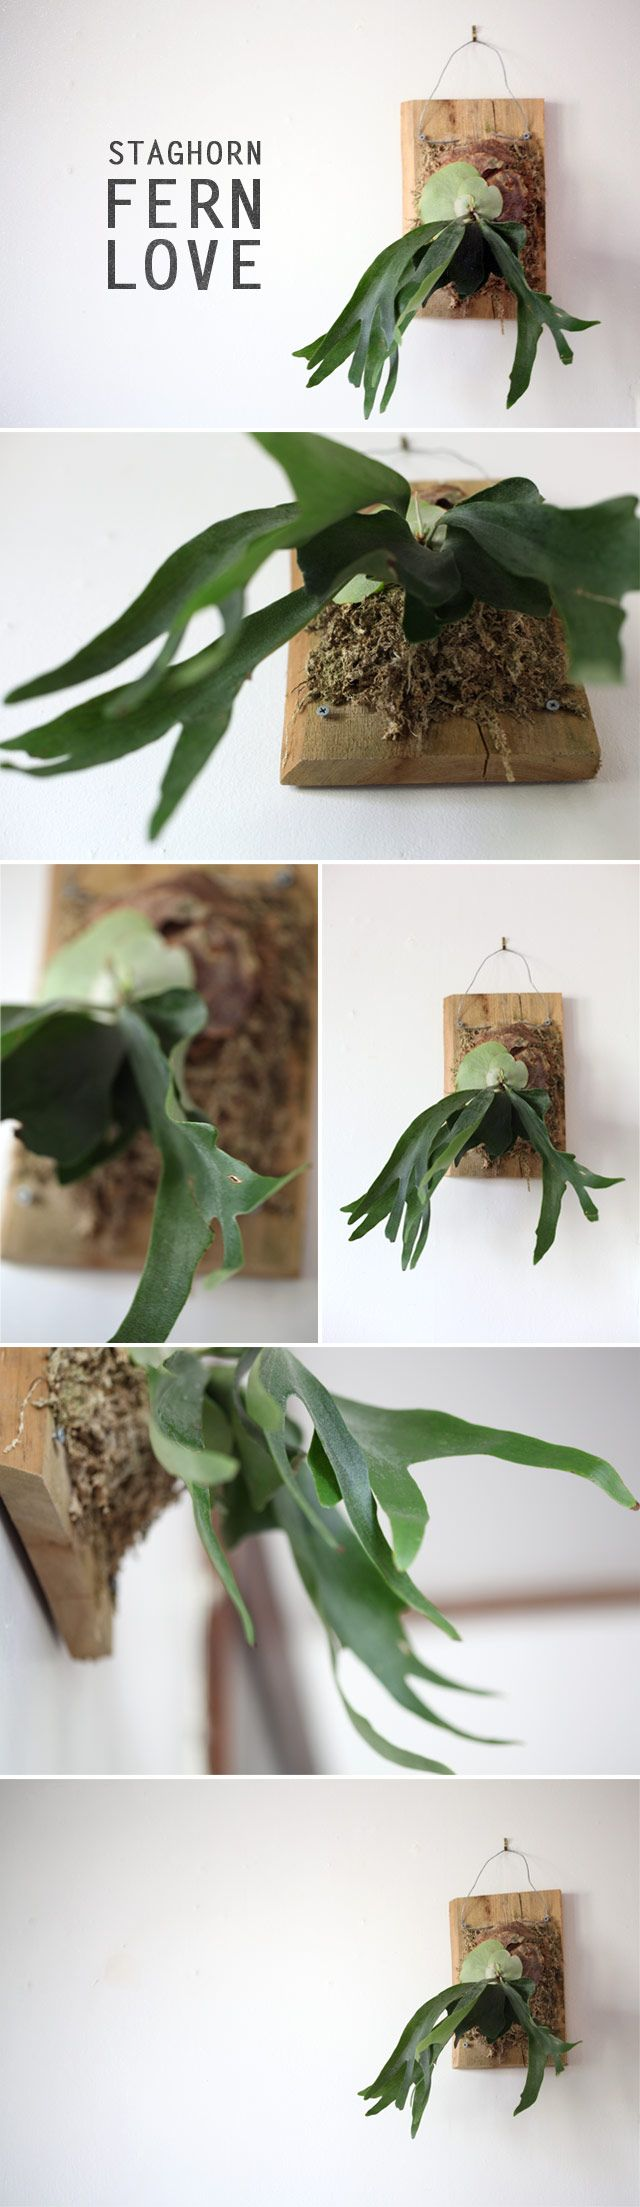 Staghorn Ferns    (I was totally mentioned in this blog! haha)